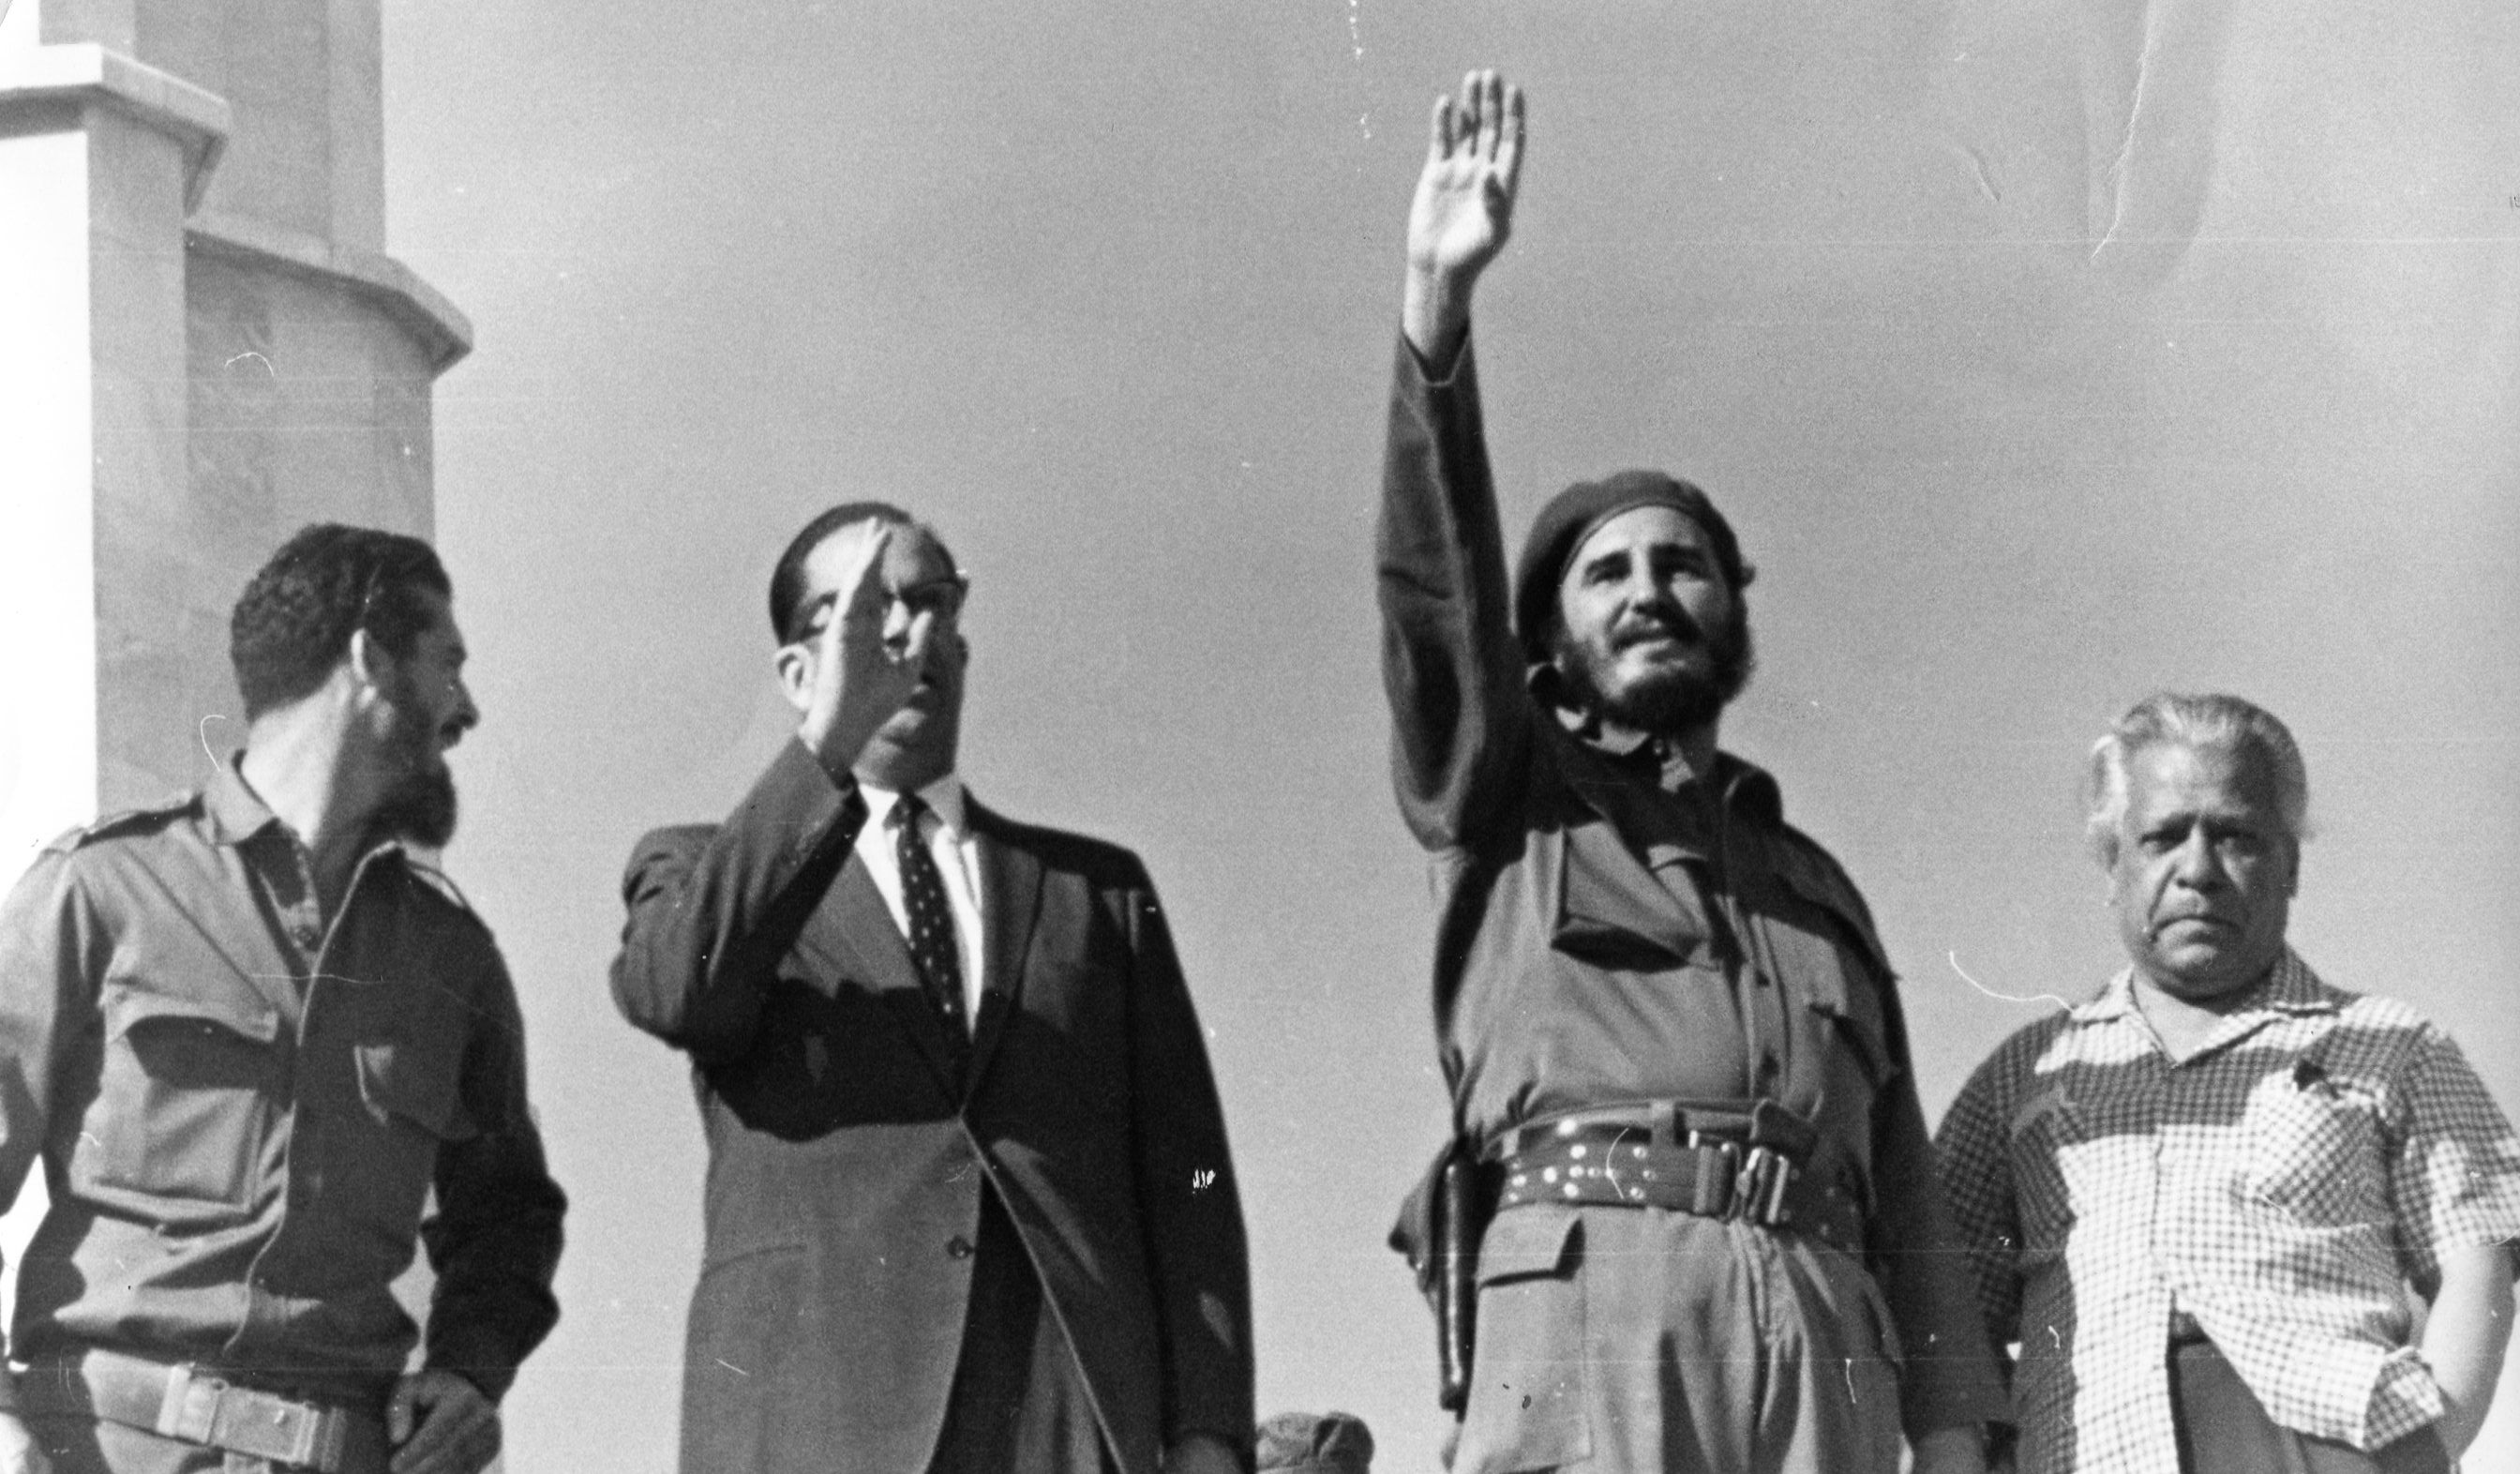 fidel castro essays The life of fidel castro fidel castro, is the well-known dictatorial leader of cuba for nearly five decades his leadership has been the focus of international.